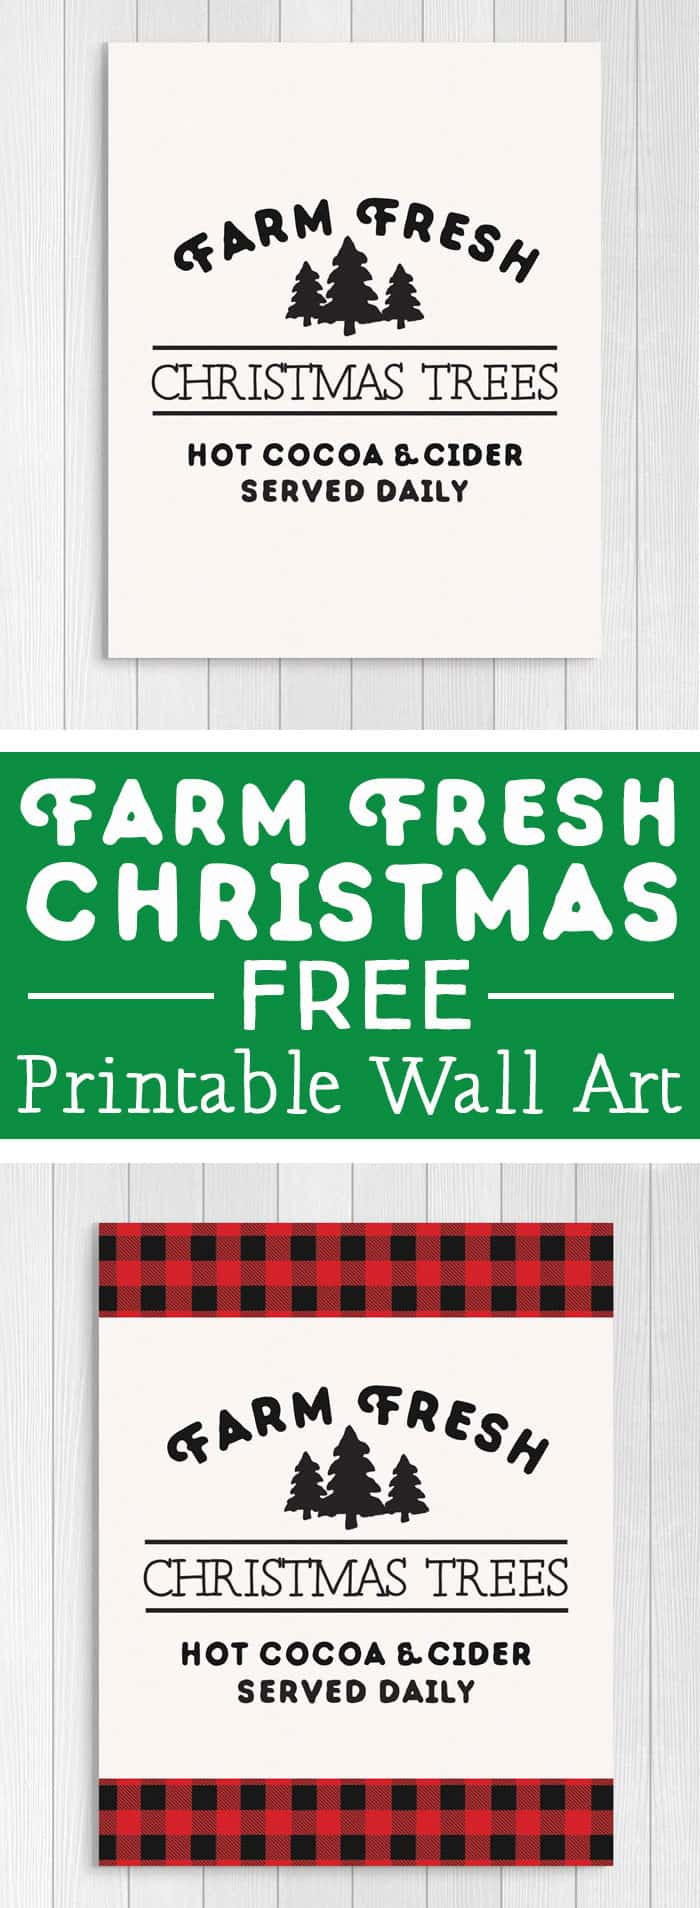 Free Printables: Farm Fresh Christmas Trees sign in plaid and neutral.